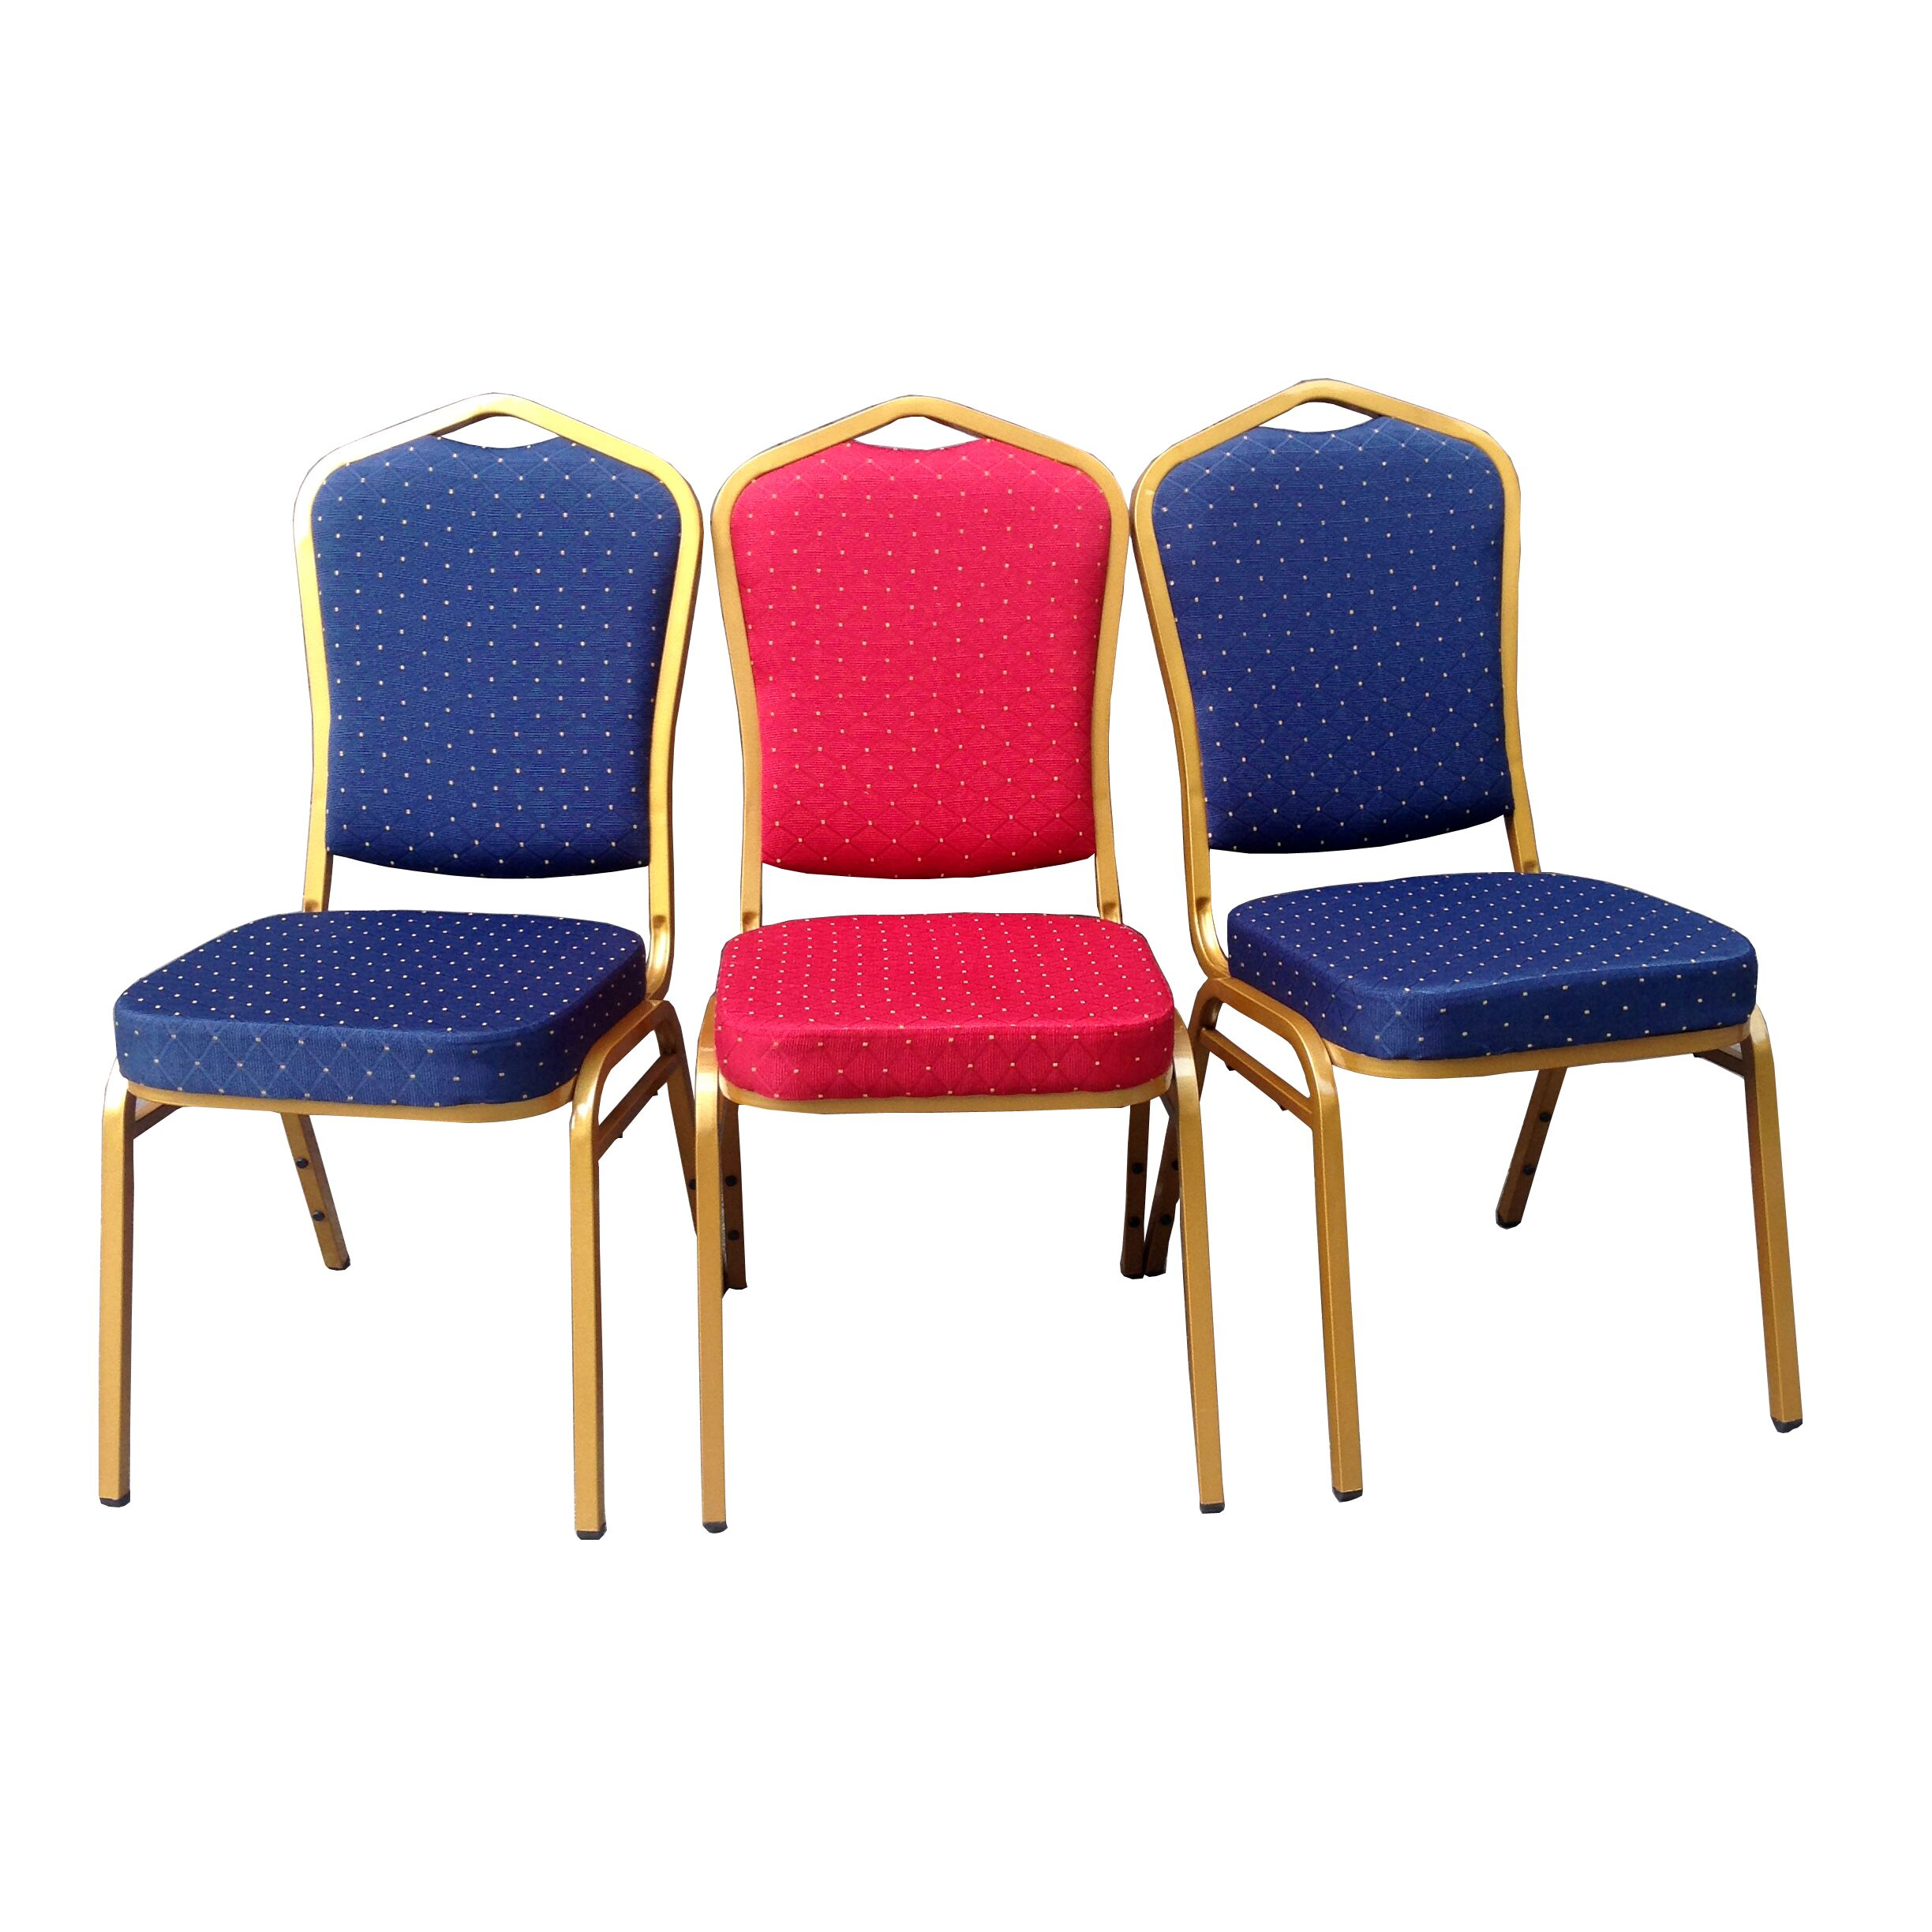 How to choose the banquet chair tube size ?